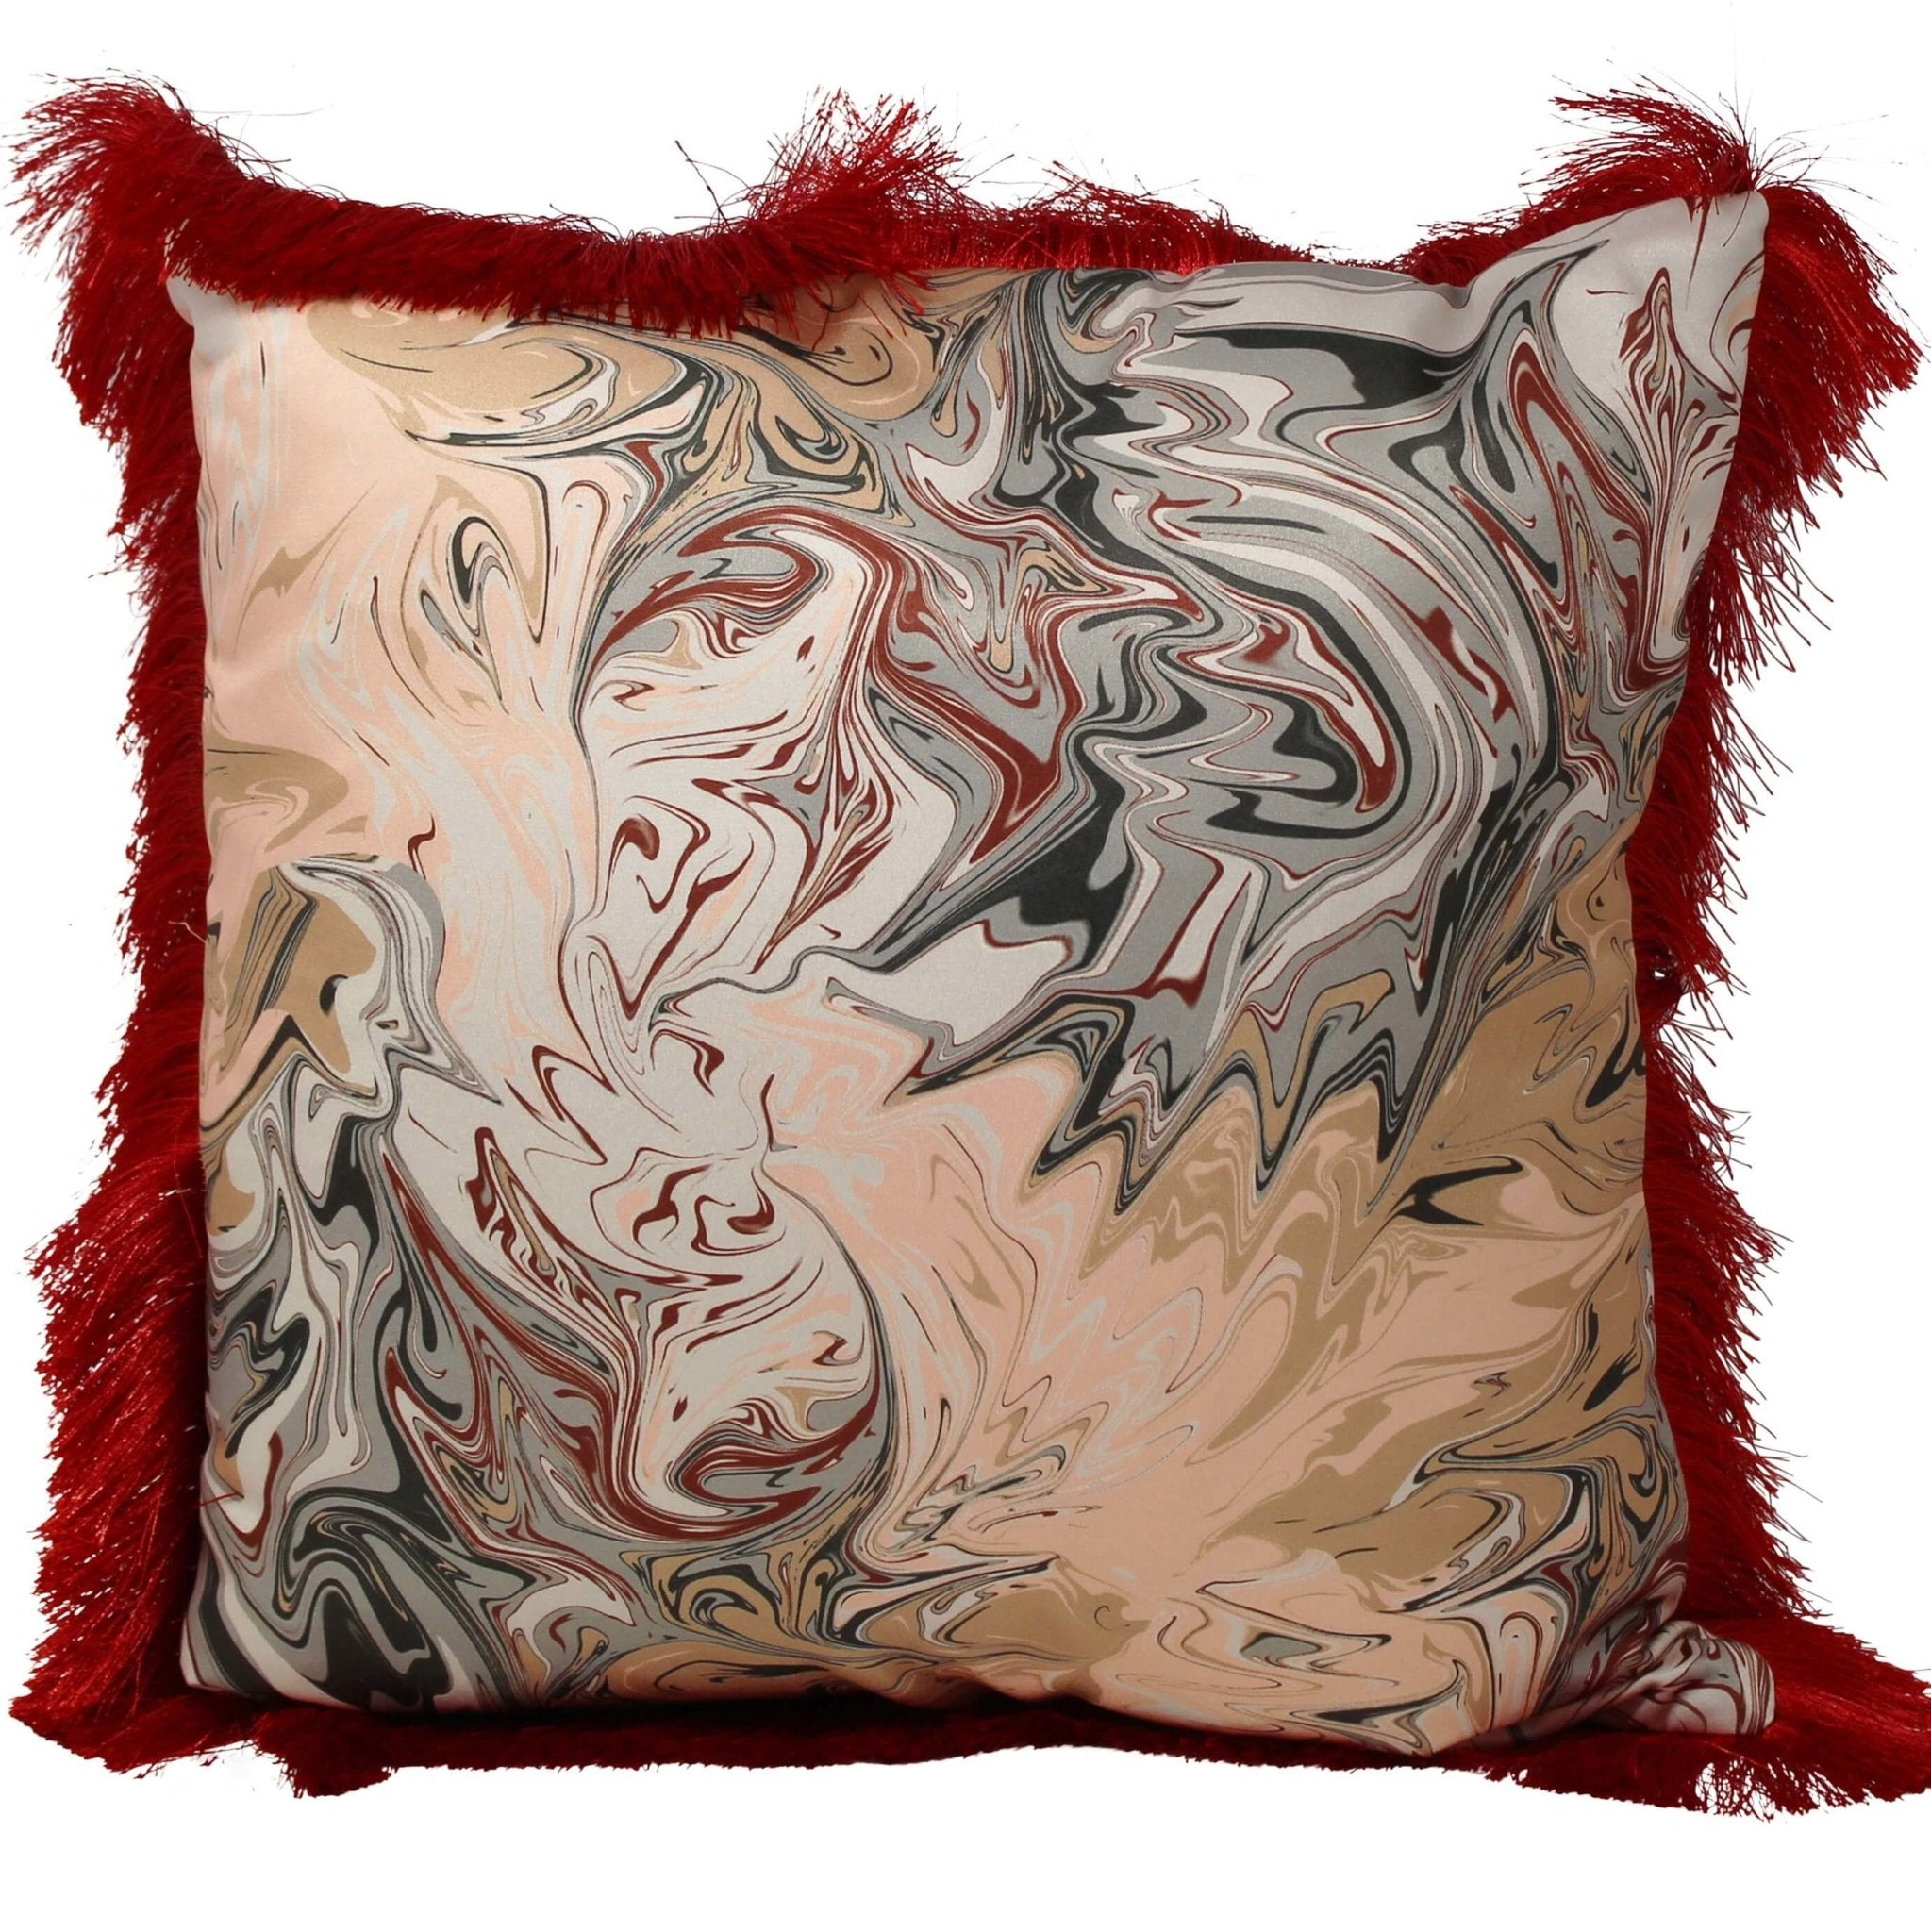 Baked Print Cushion - The Clothing LoungeRebecca J Mills